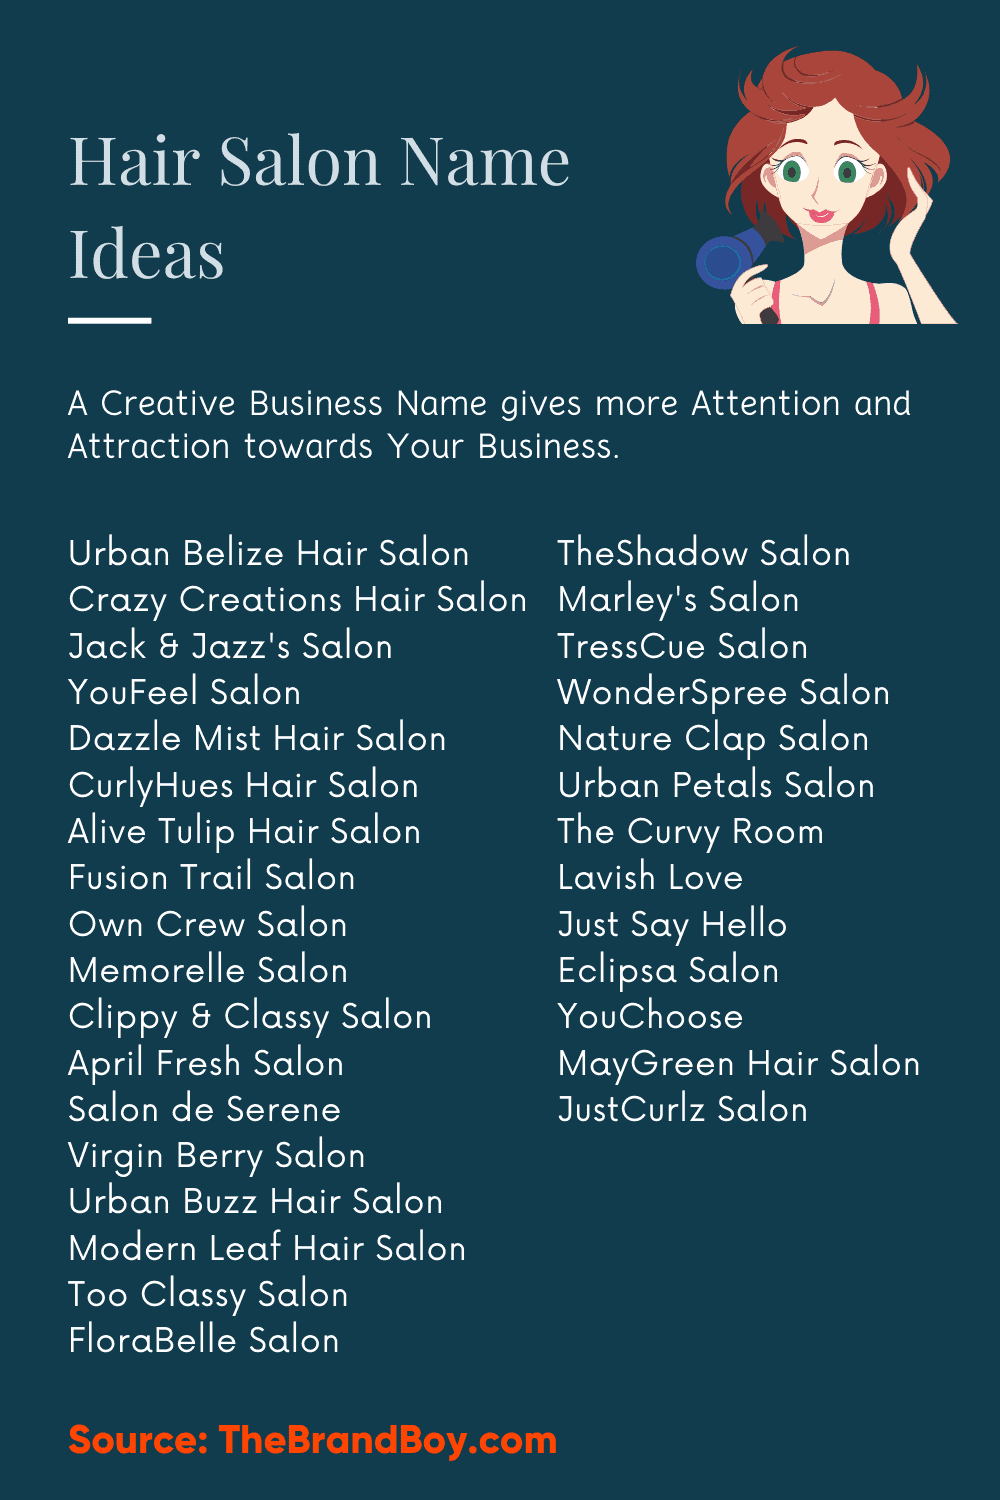 20+ Creative Hair Salon Names & Ideas - theBrandBoy.com